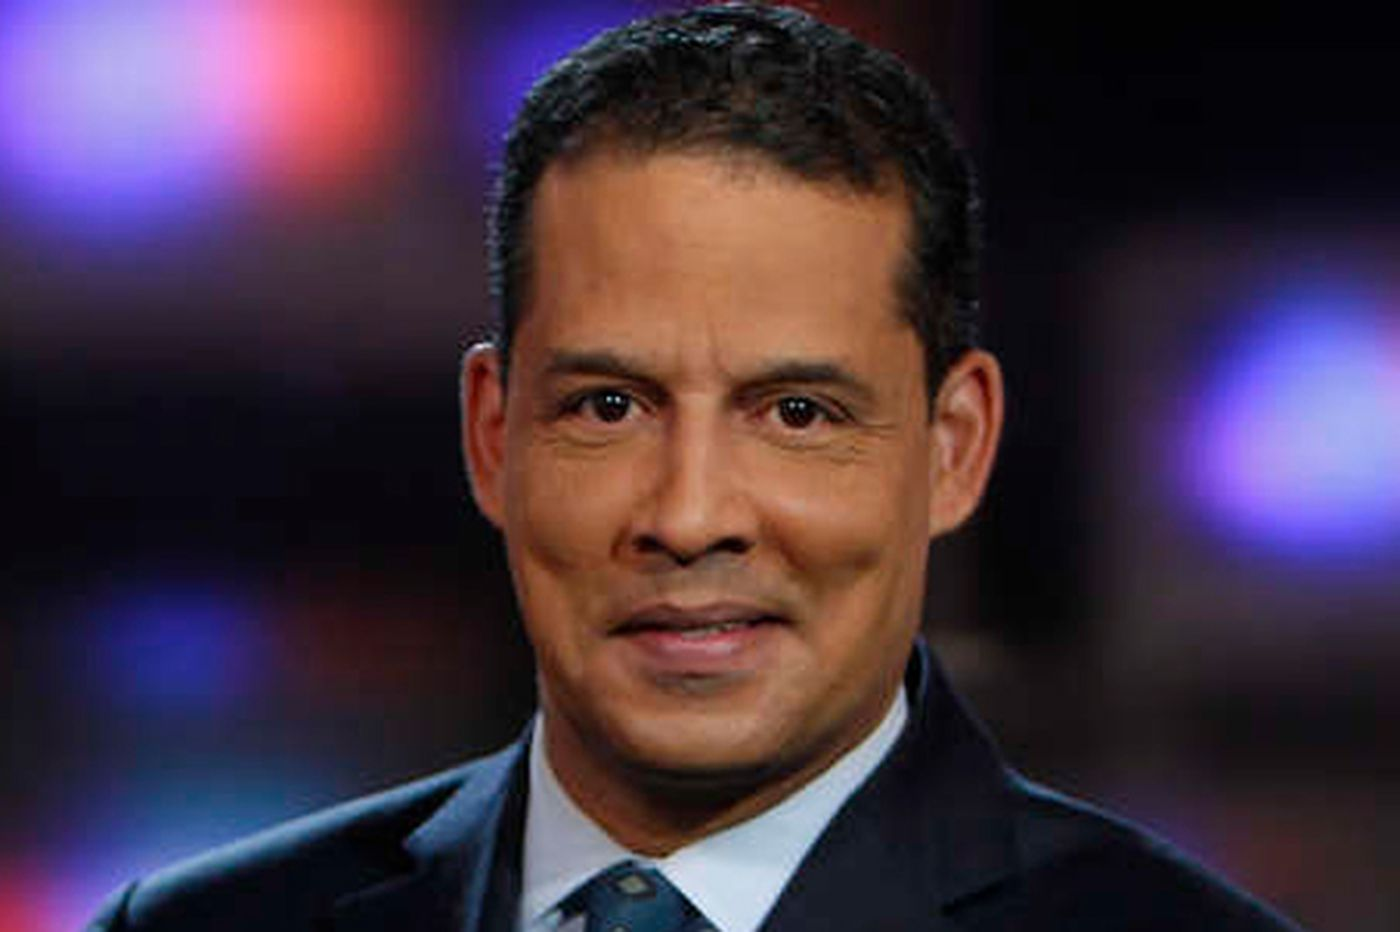 Iain Page out at Fox 29 after amicable split